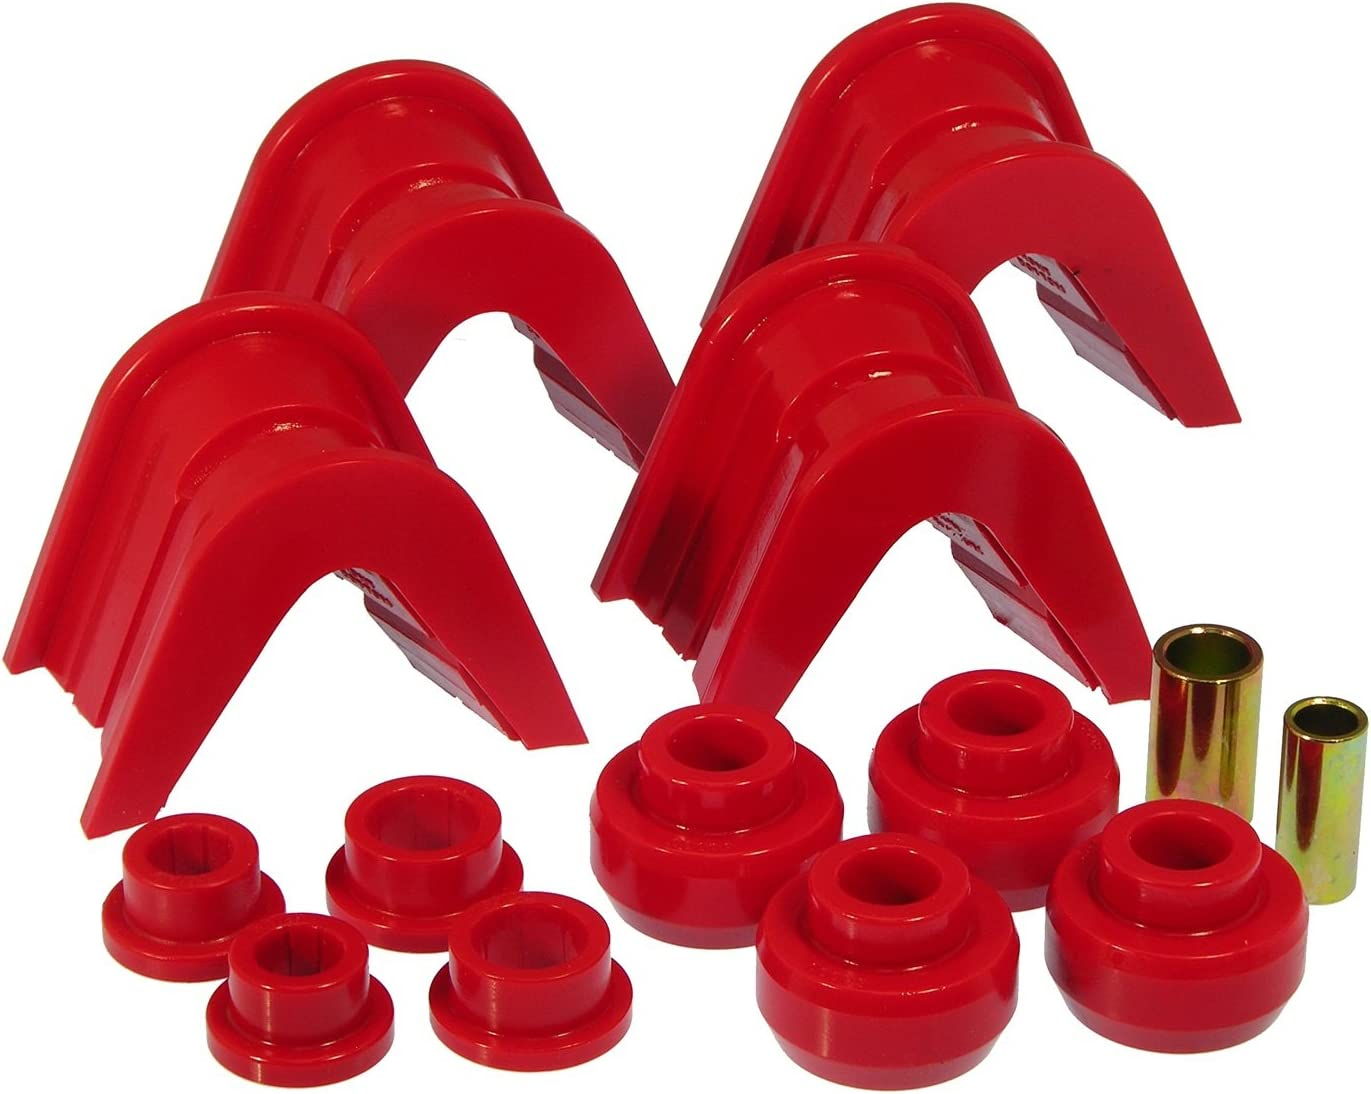 Prothane 6-1901 Red 2 Degree Offset Complete Bushing Kit